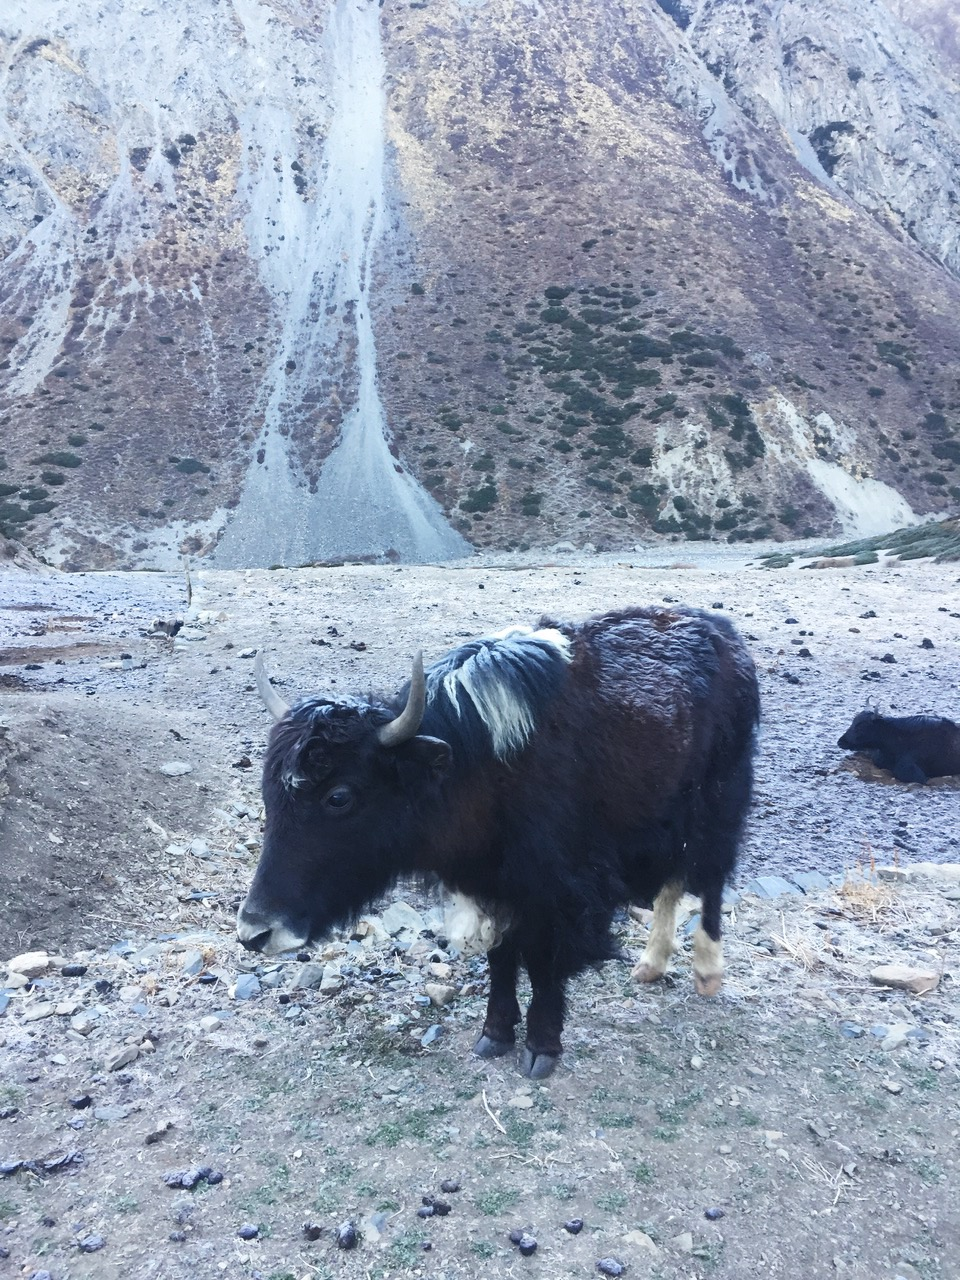 Yak with frosted fur